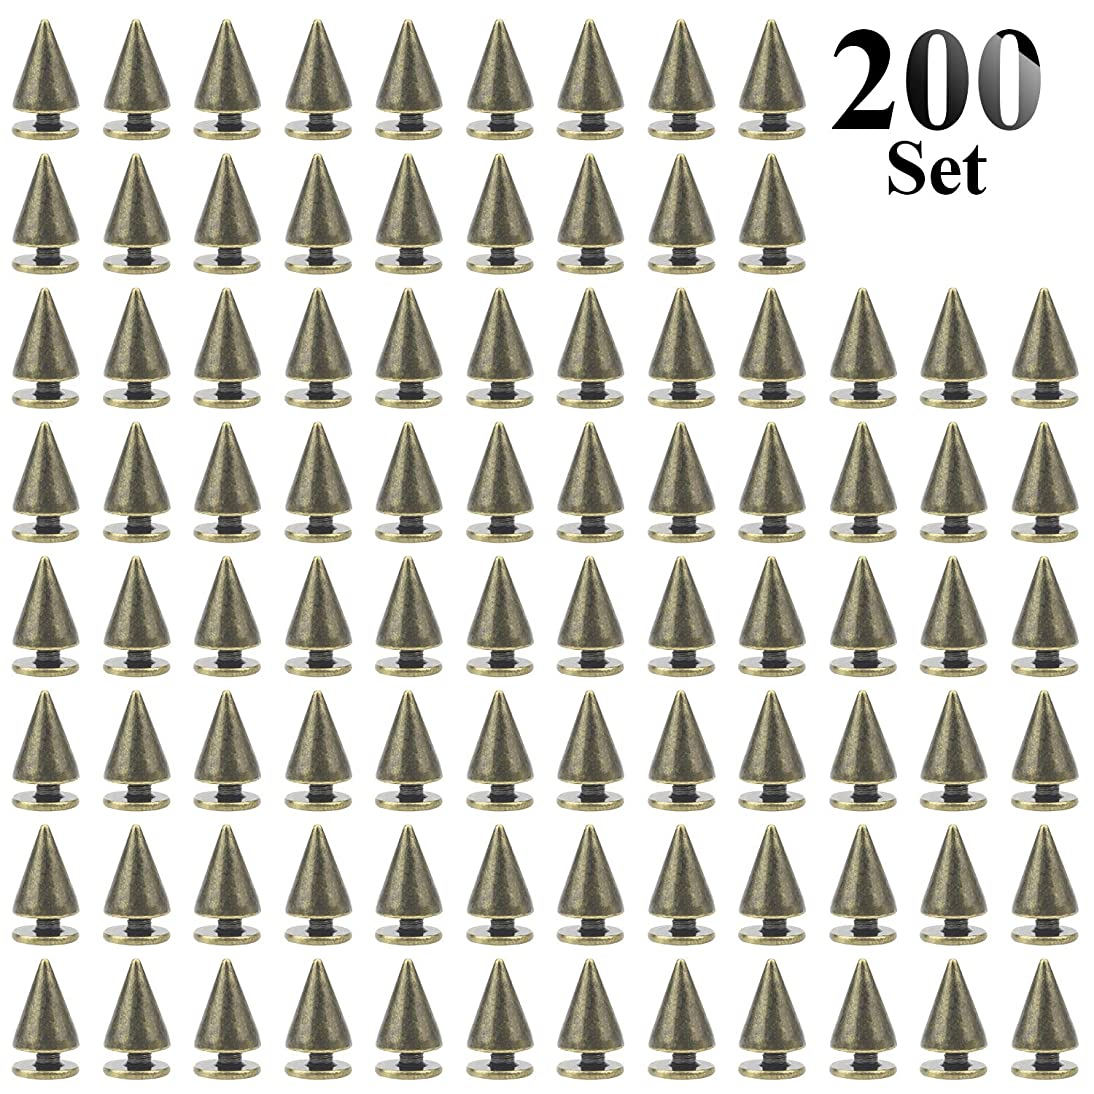 Favordrory 7mmx10mm Bronze Bullet Cone Spike and Stud Metal Screw Back for DIY Leather Crafts